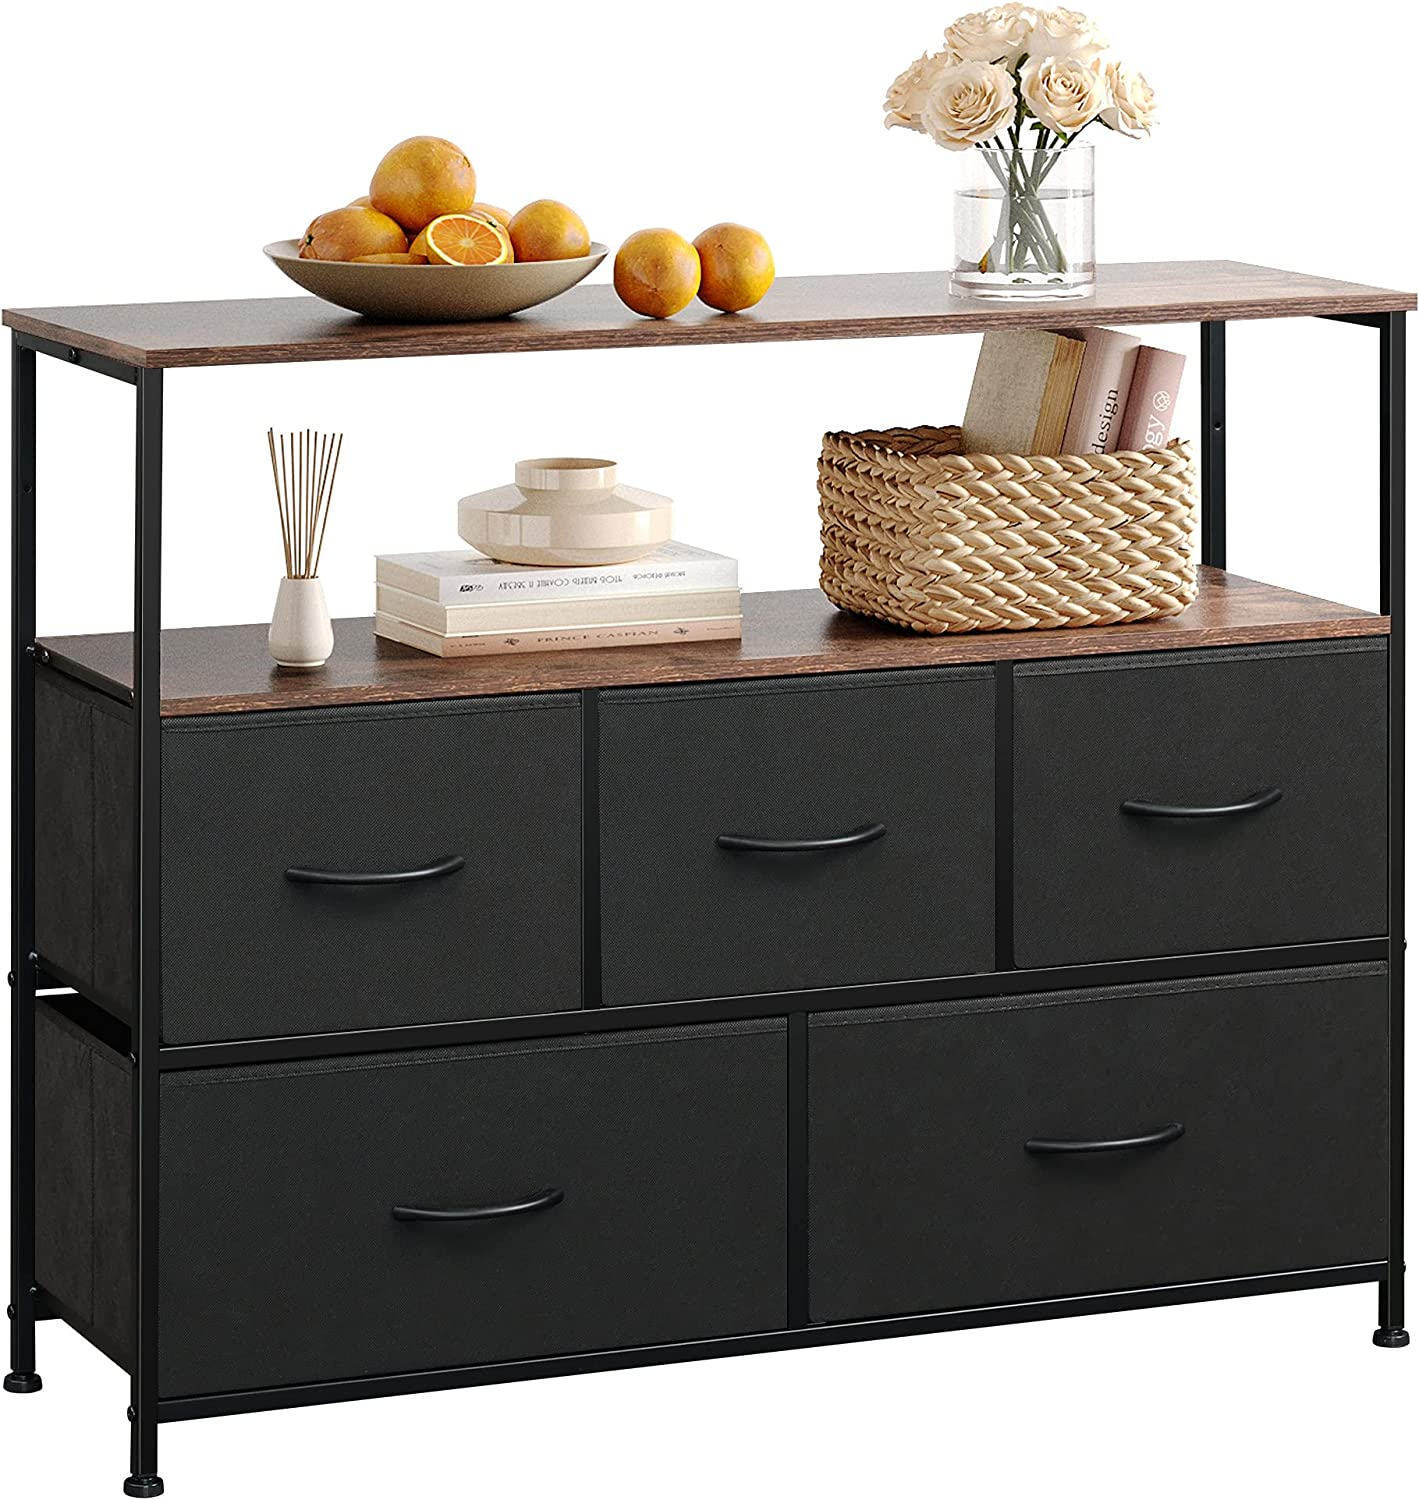 WLIVE Dresser TV Stand, Entertainment Center with Fabric Drawers, Media Console Table with Open Shelves for TV up to 45 inch, Storage Drawer Unit for Bedroom, Living Room, Entryway, Black